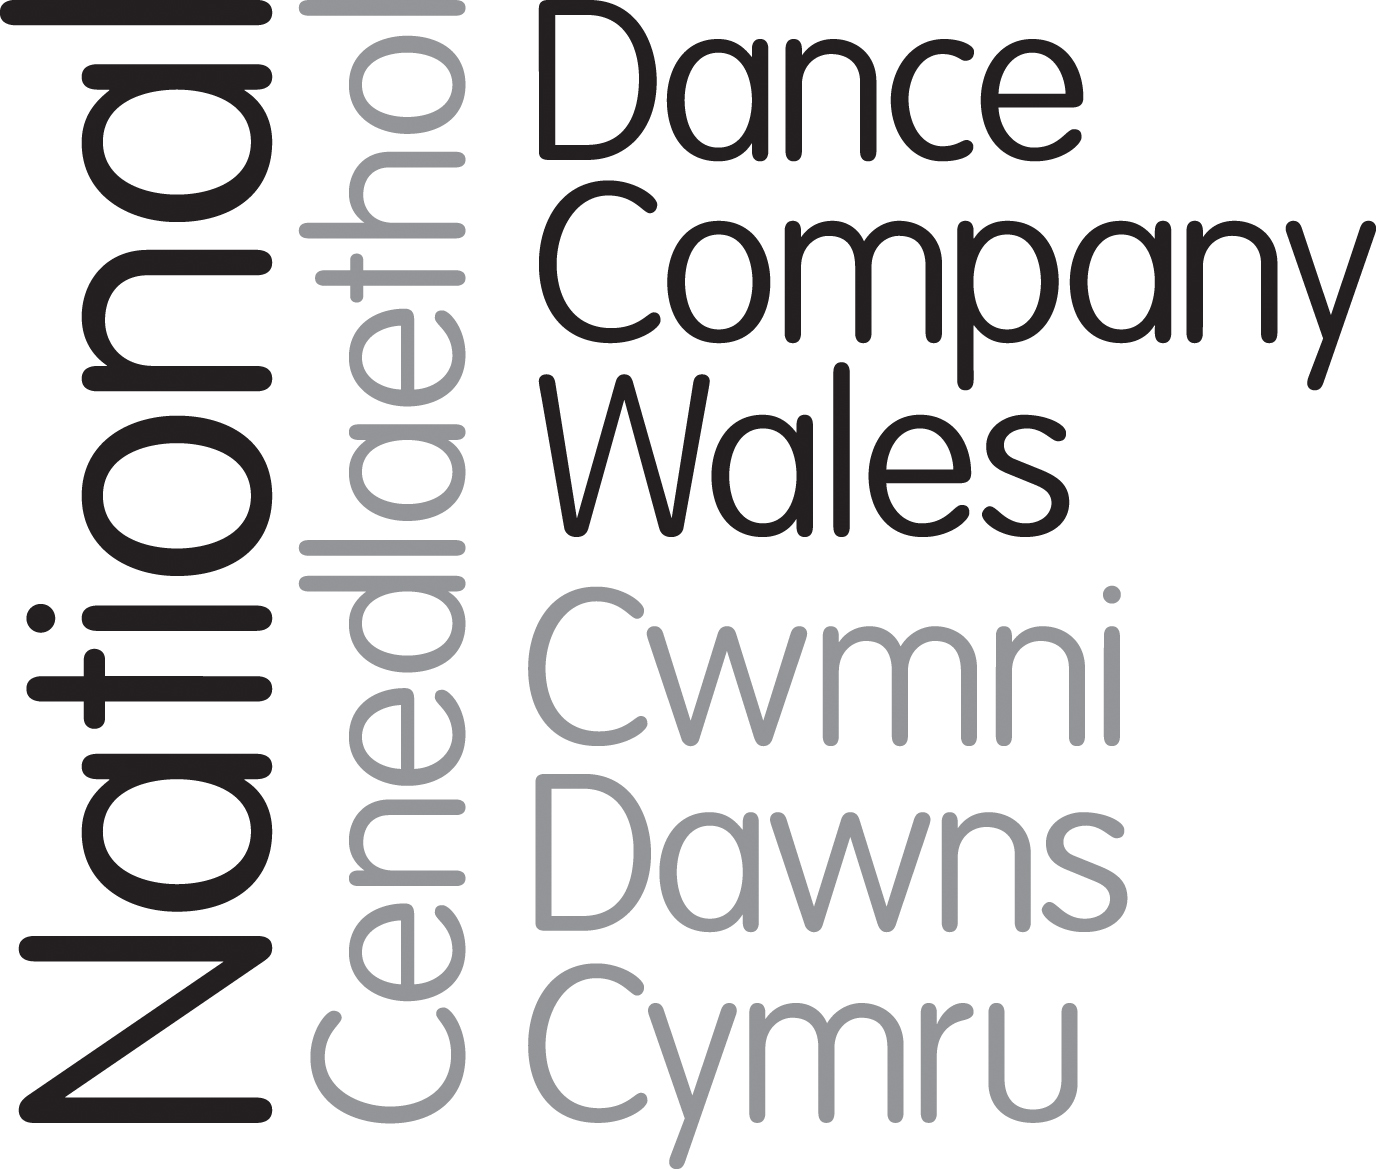 2. NDCWales